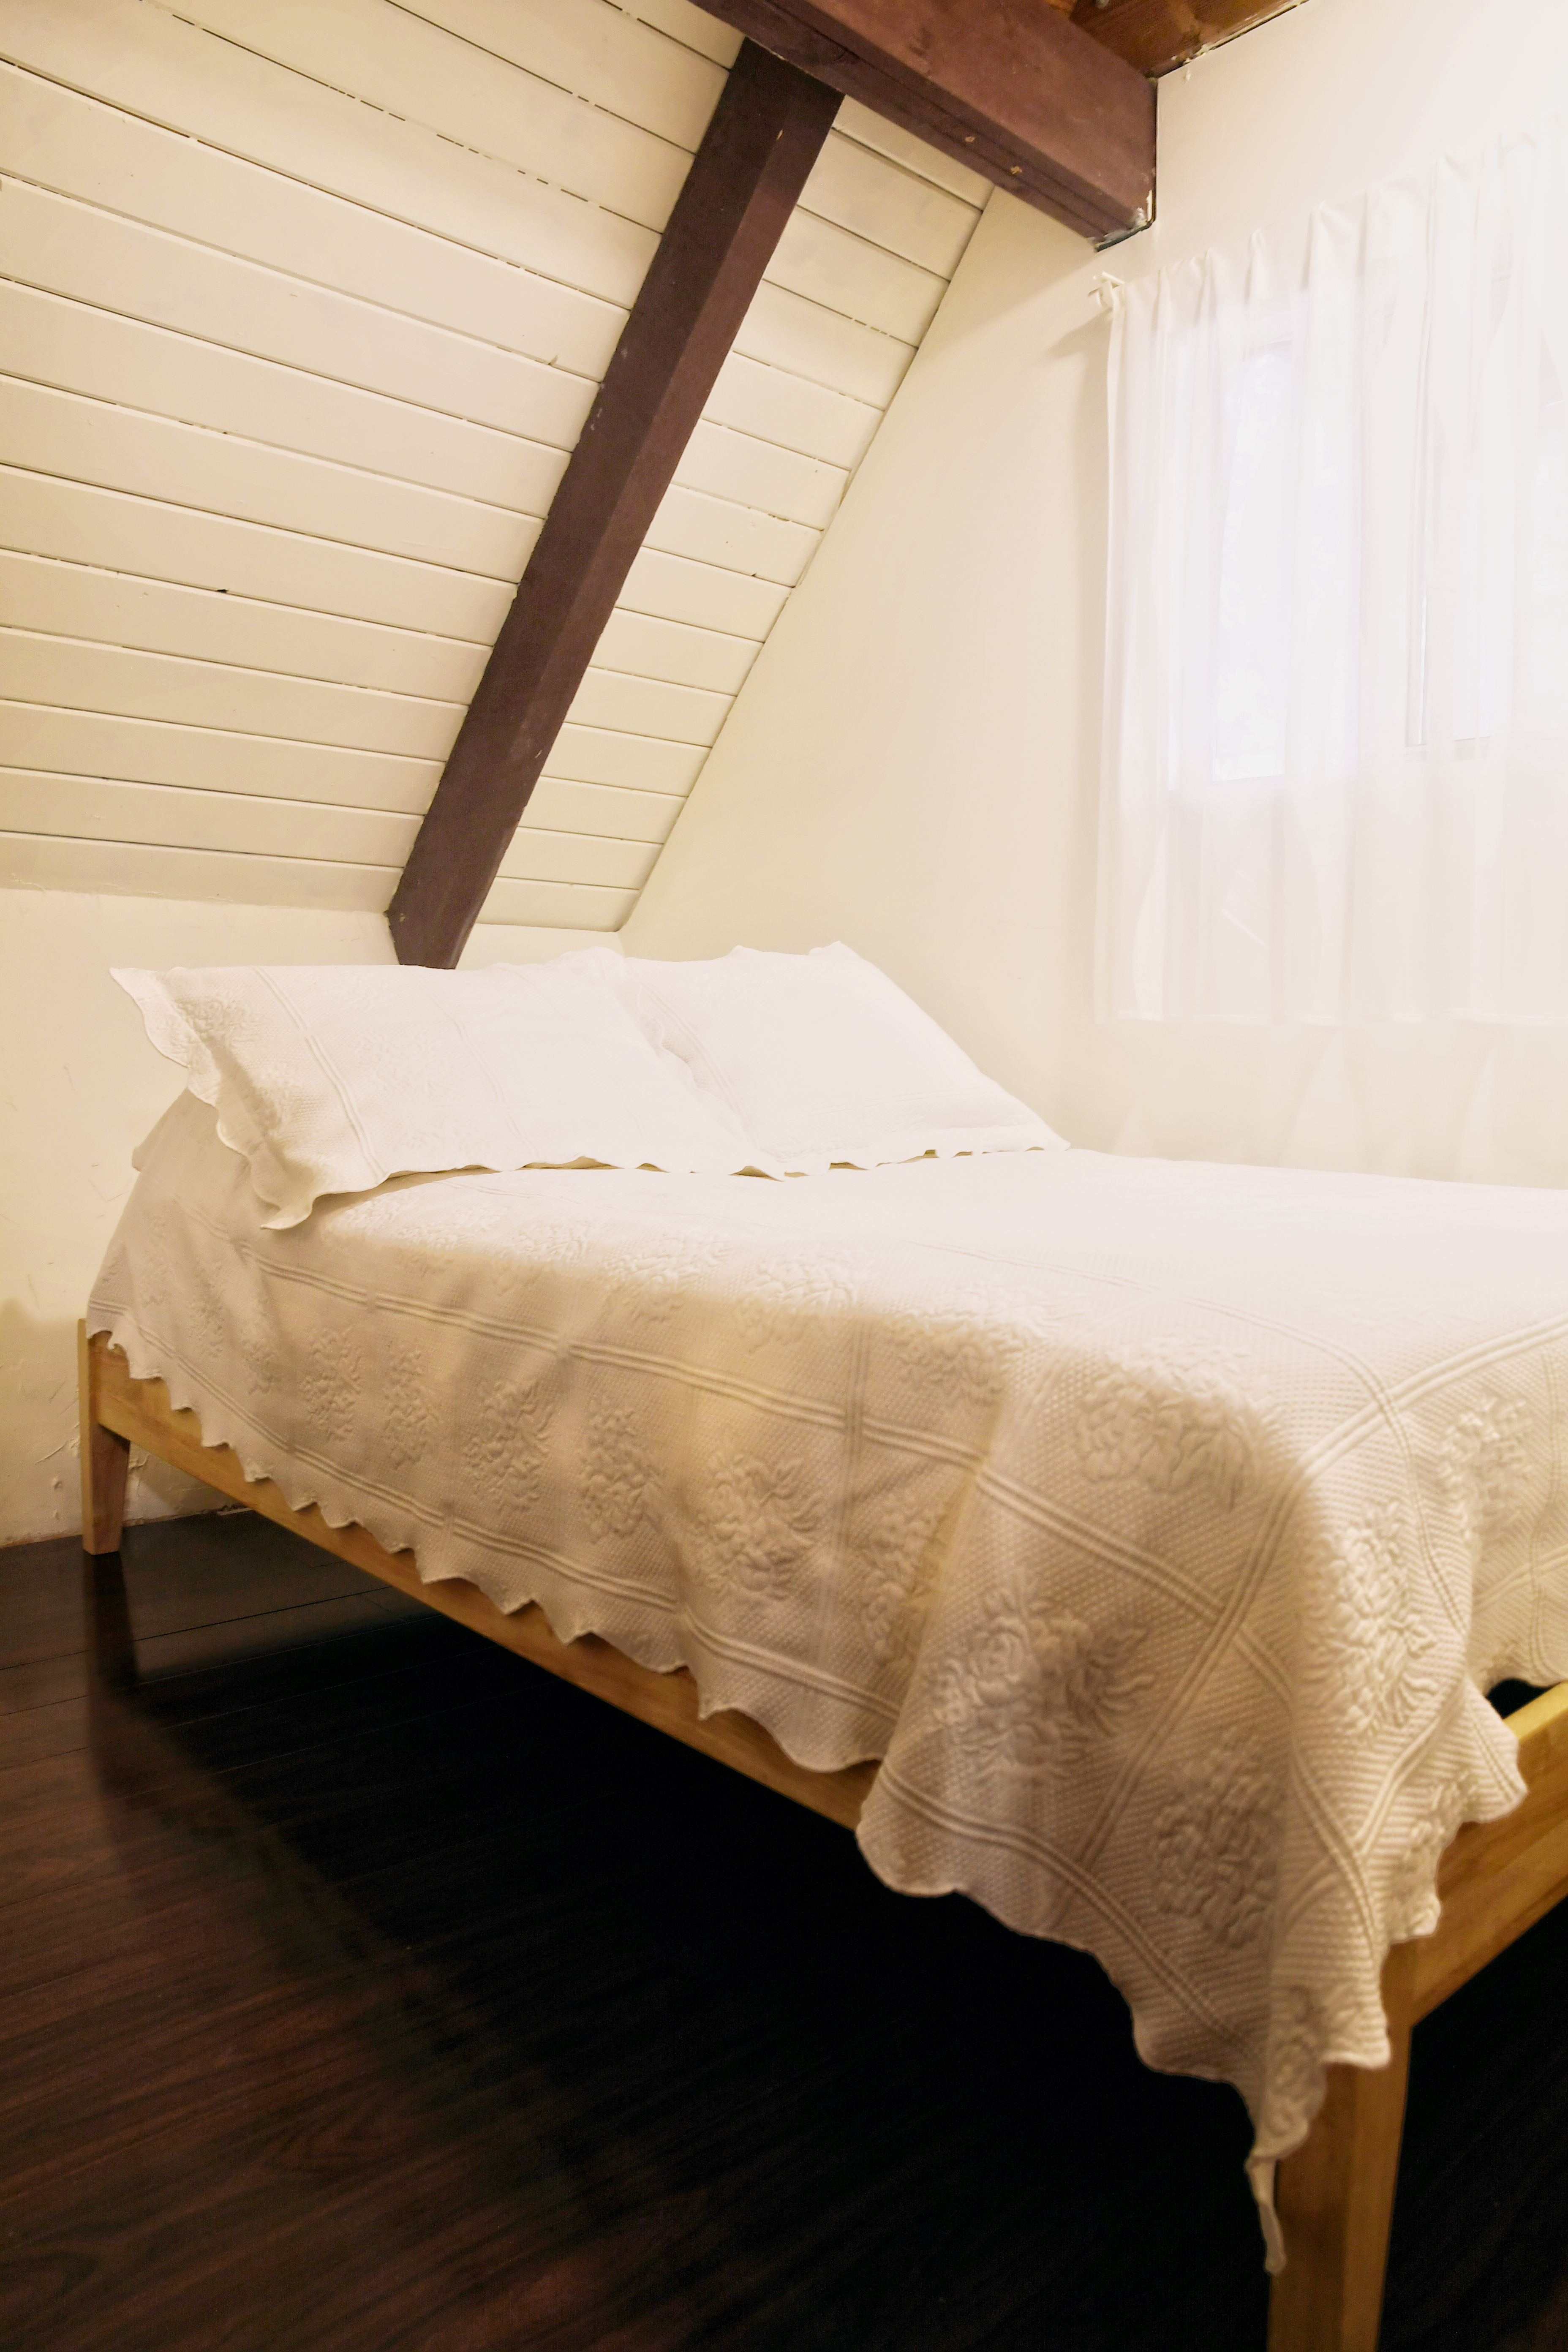 The 1st floor bedroom with a full-size bed